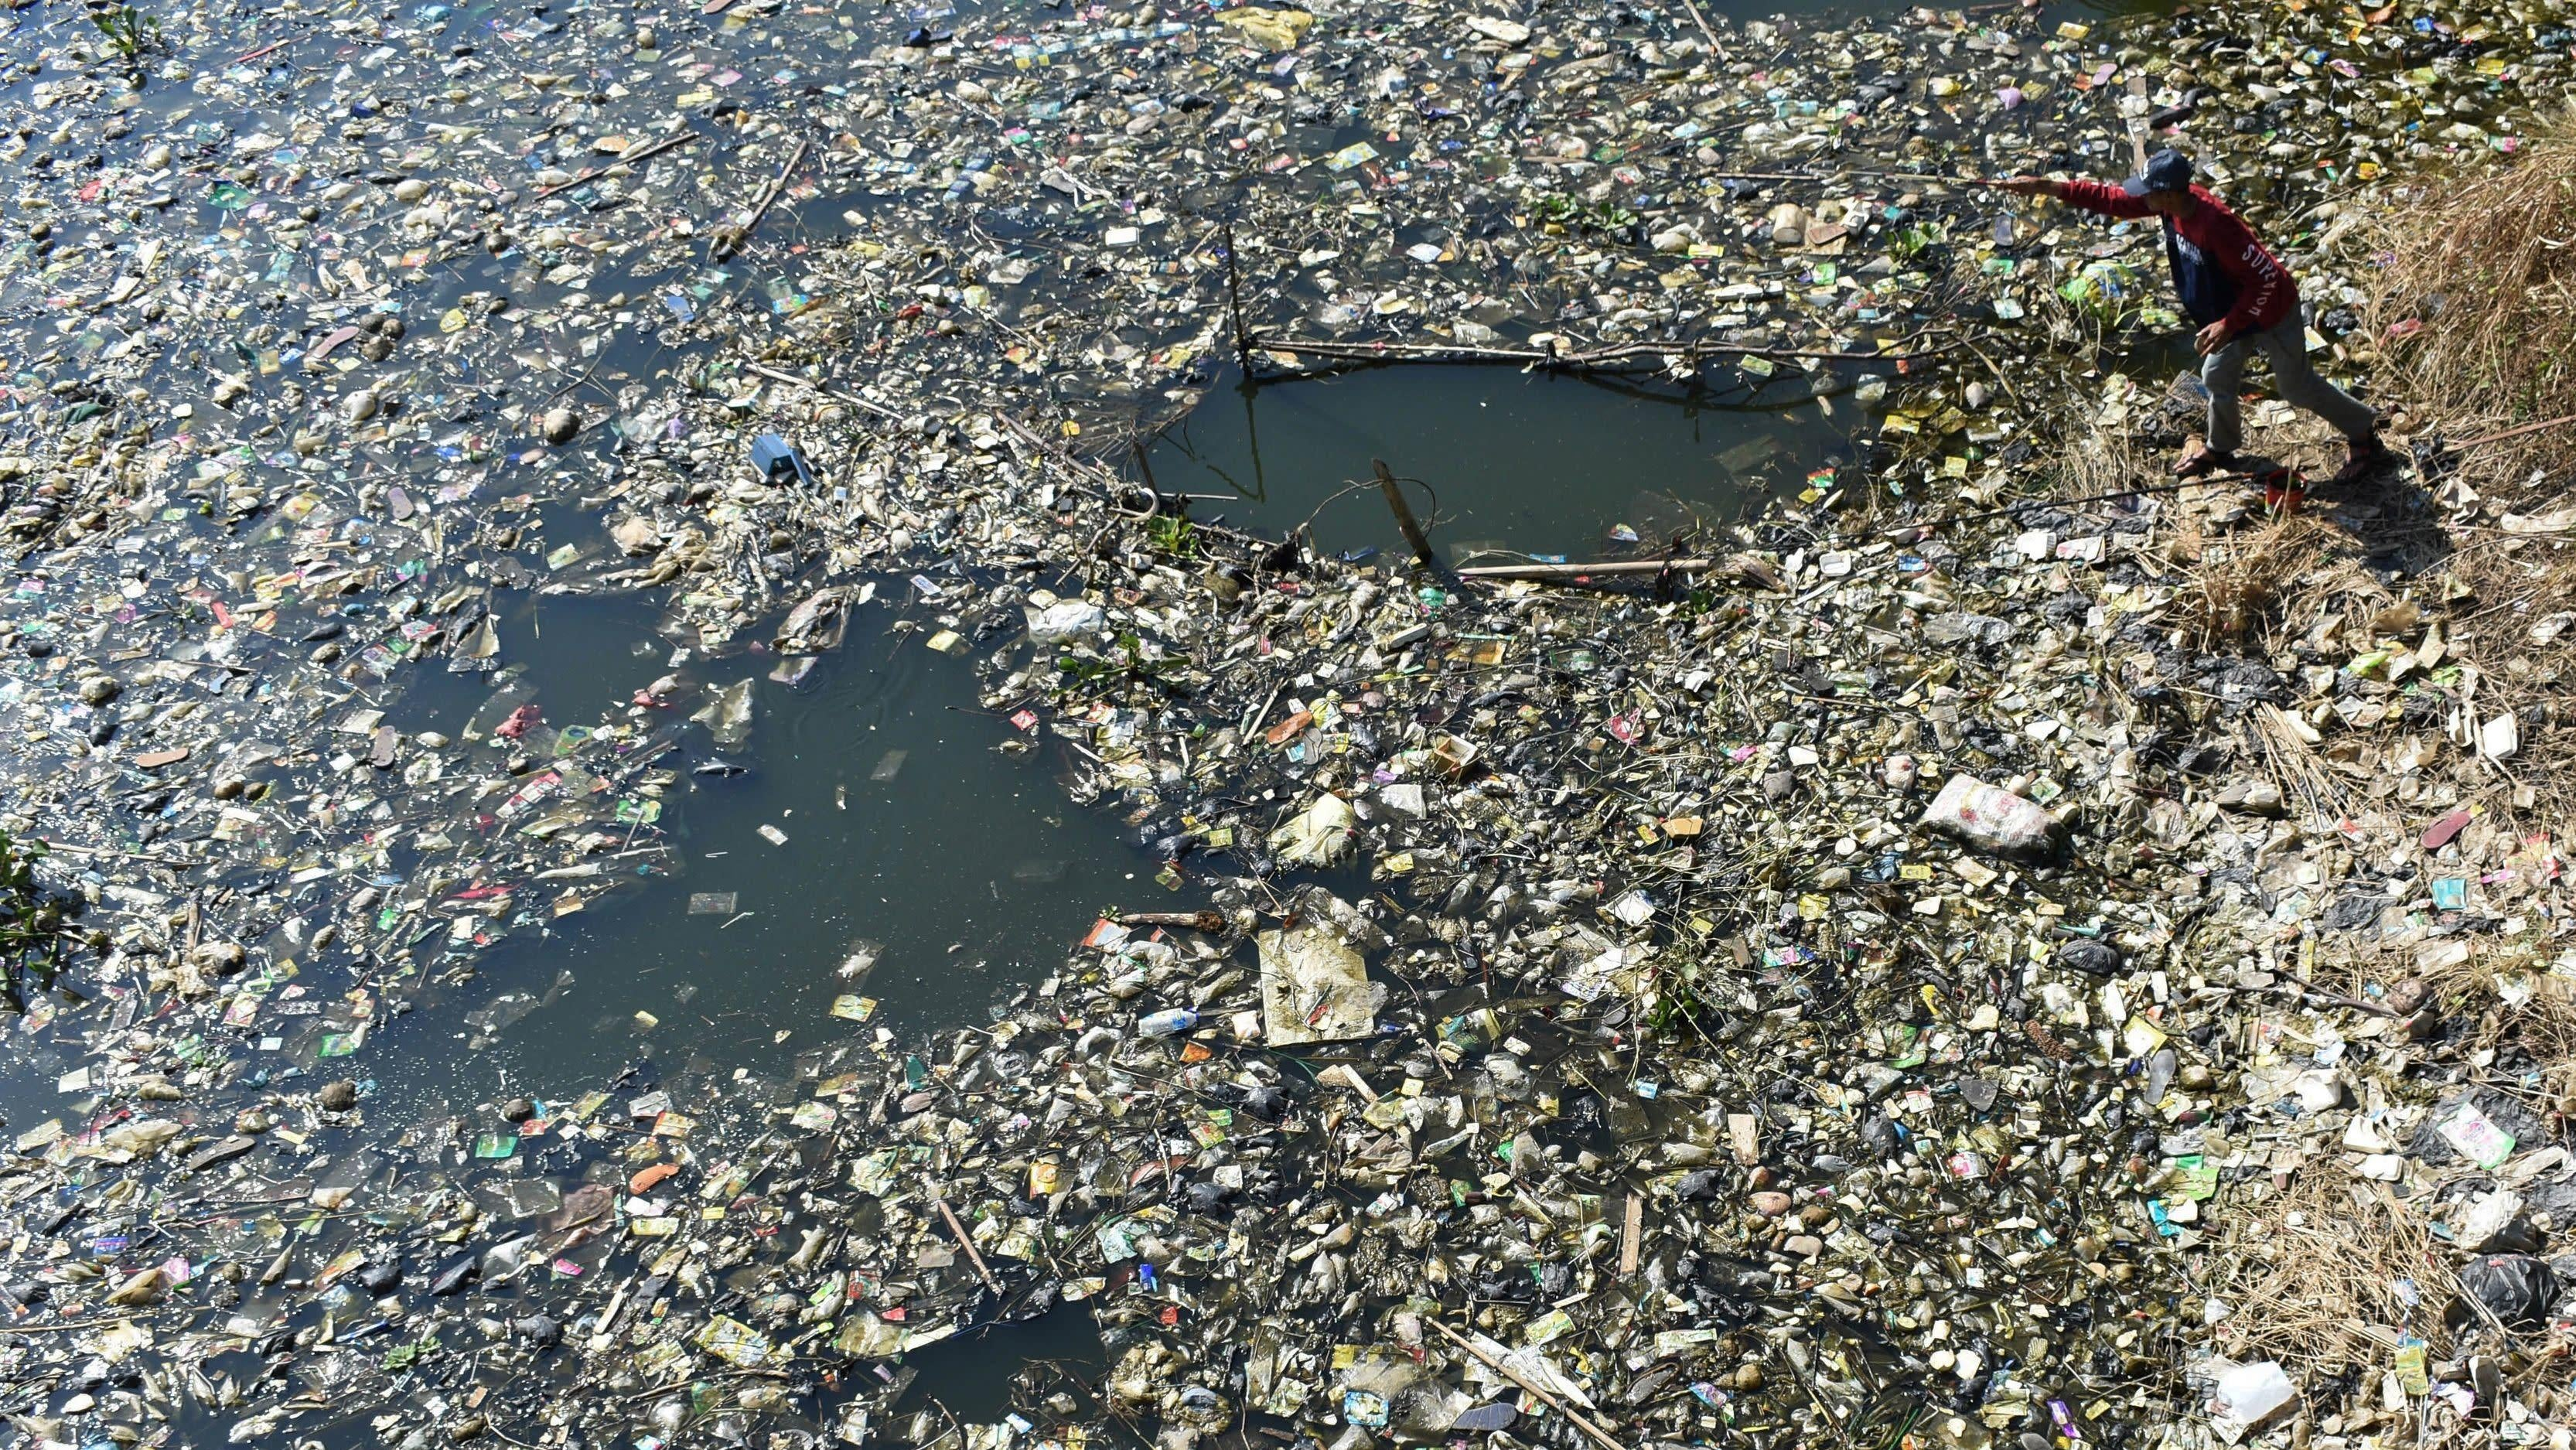 There's 'Several Orders Of Magnitude' More Plastic In Rivers Than Oceans, Study Finds